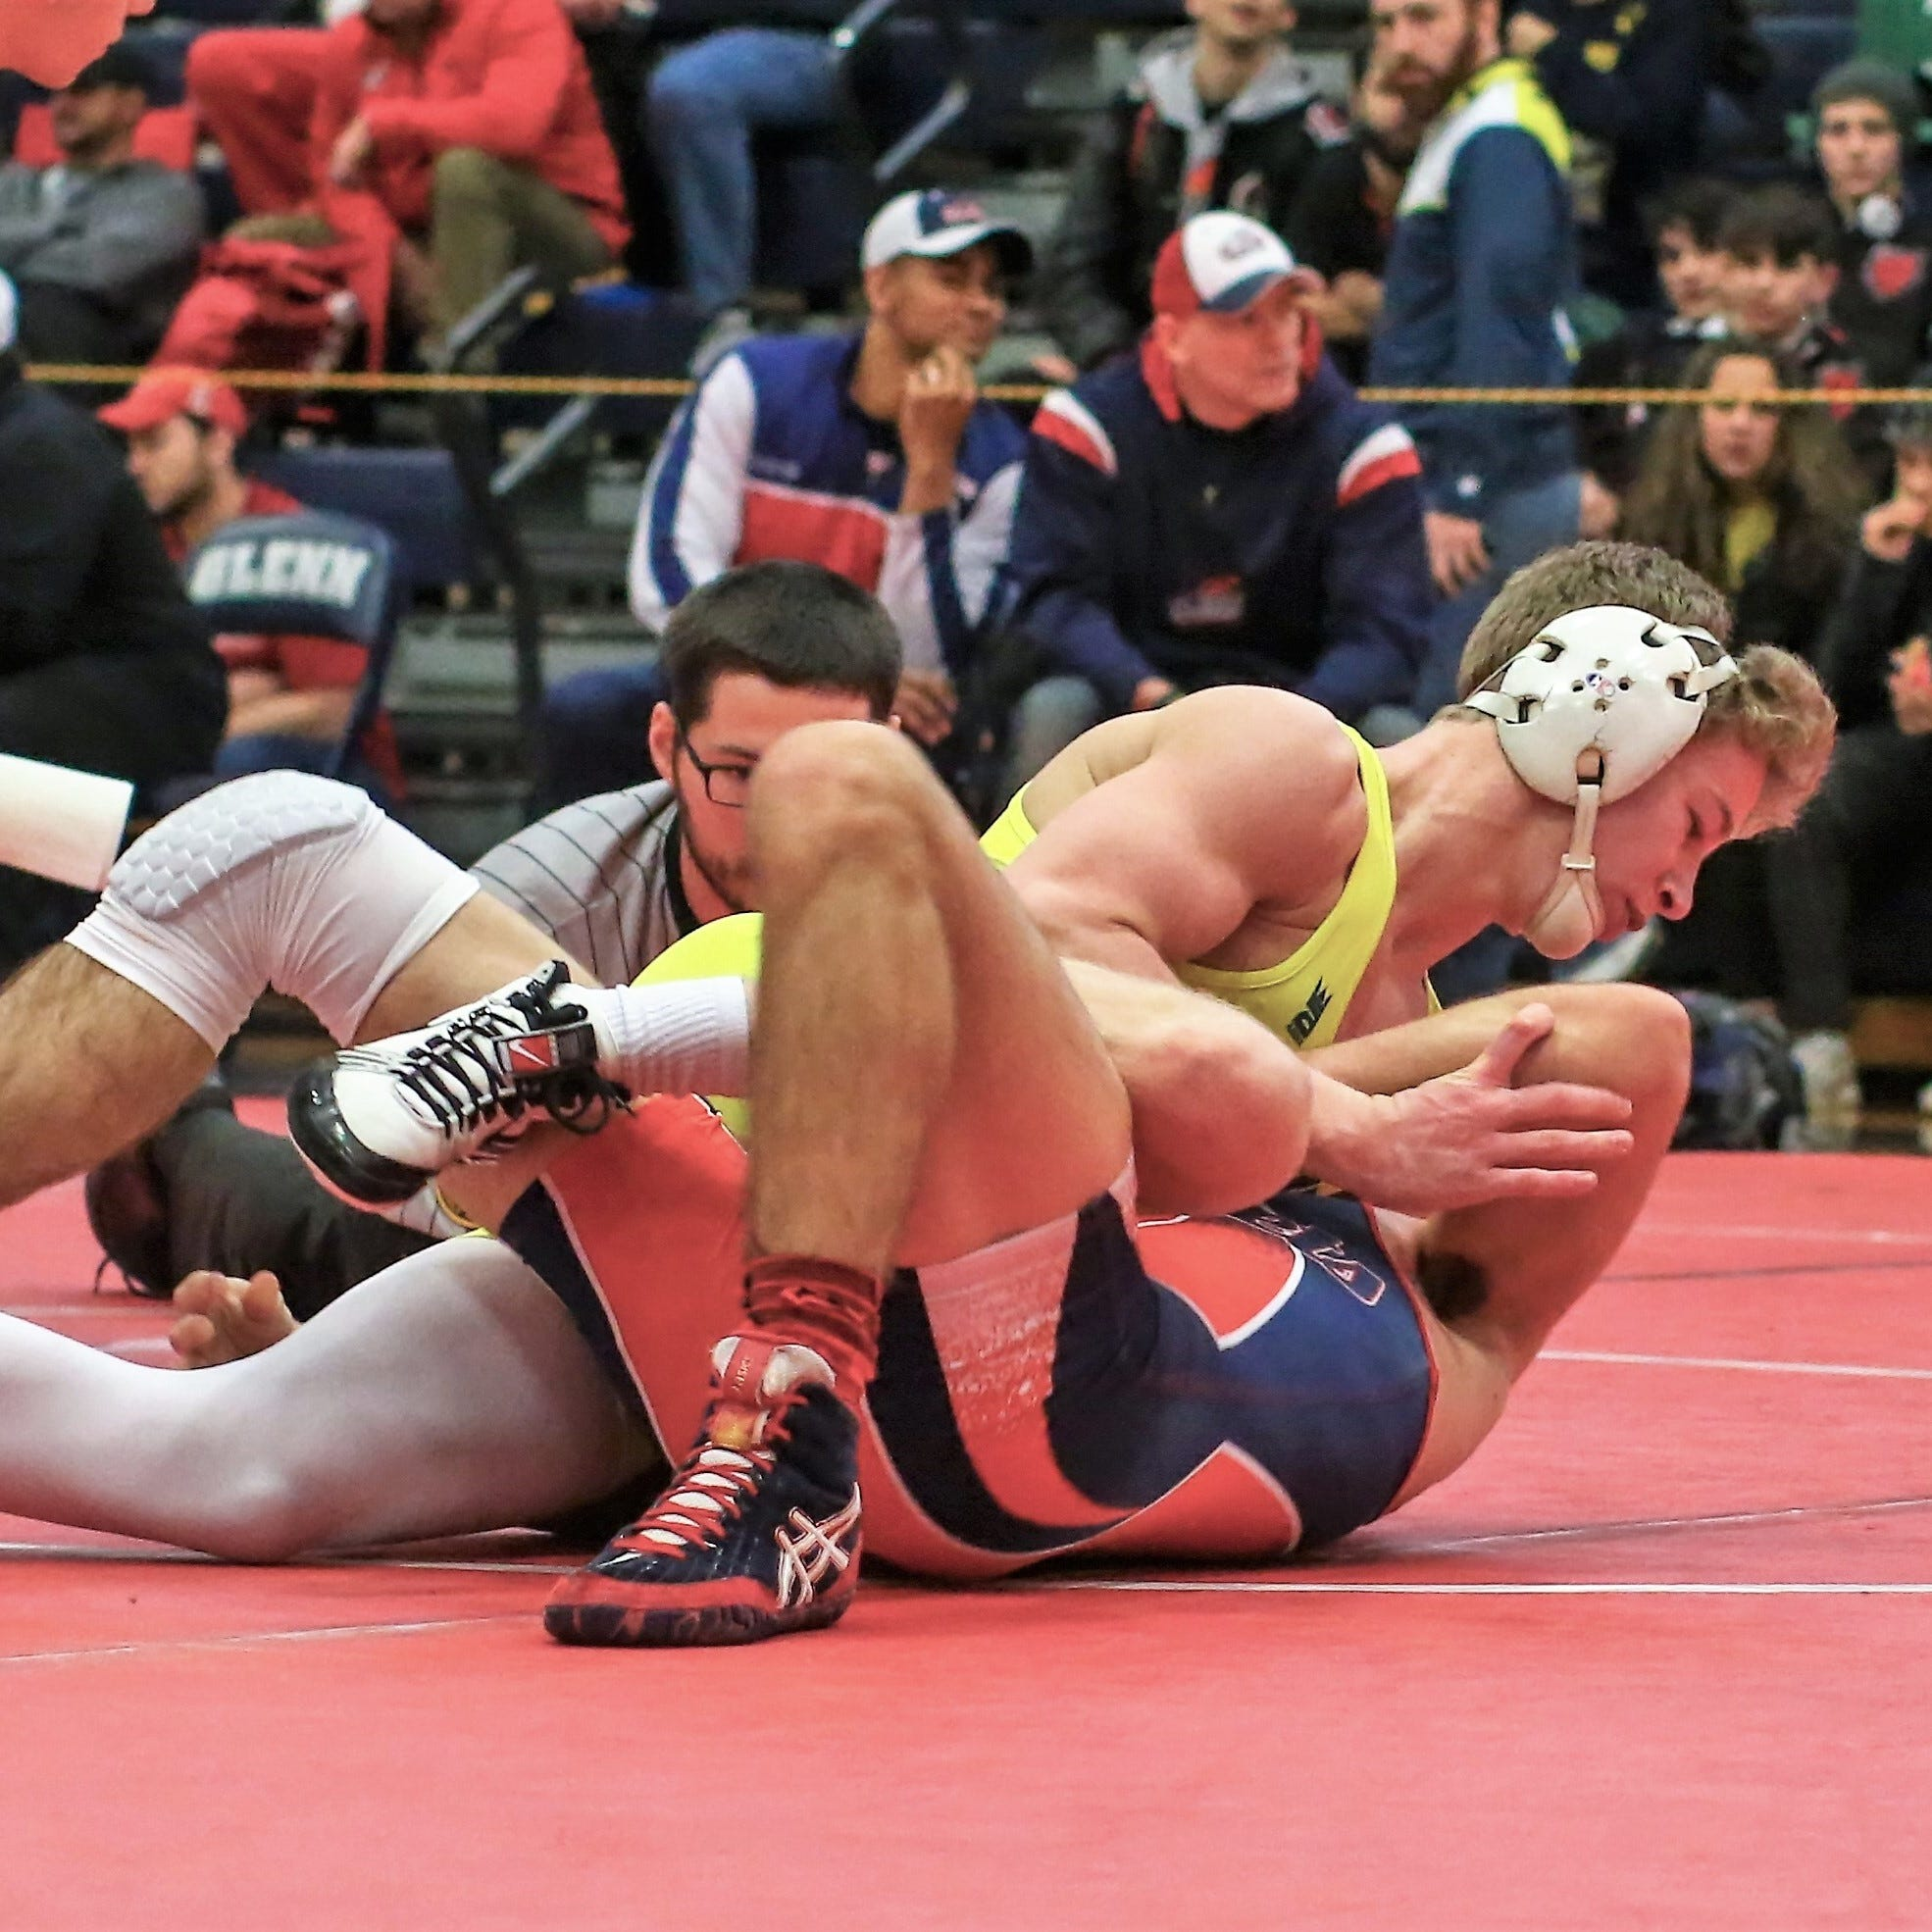 Hartland wrestlers beat strong field in Hudsonville